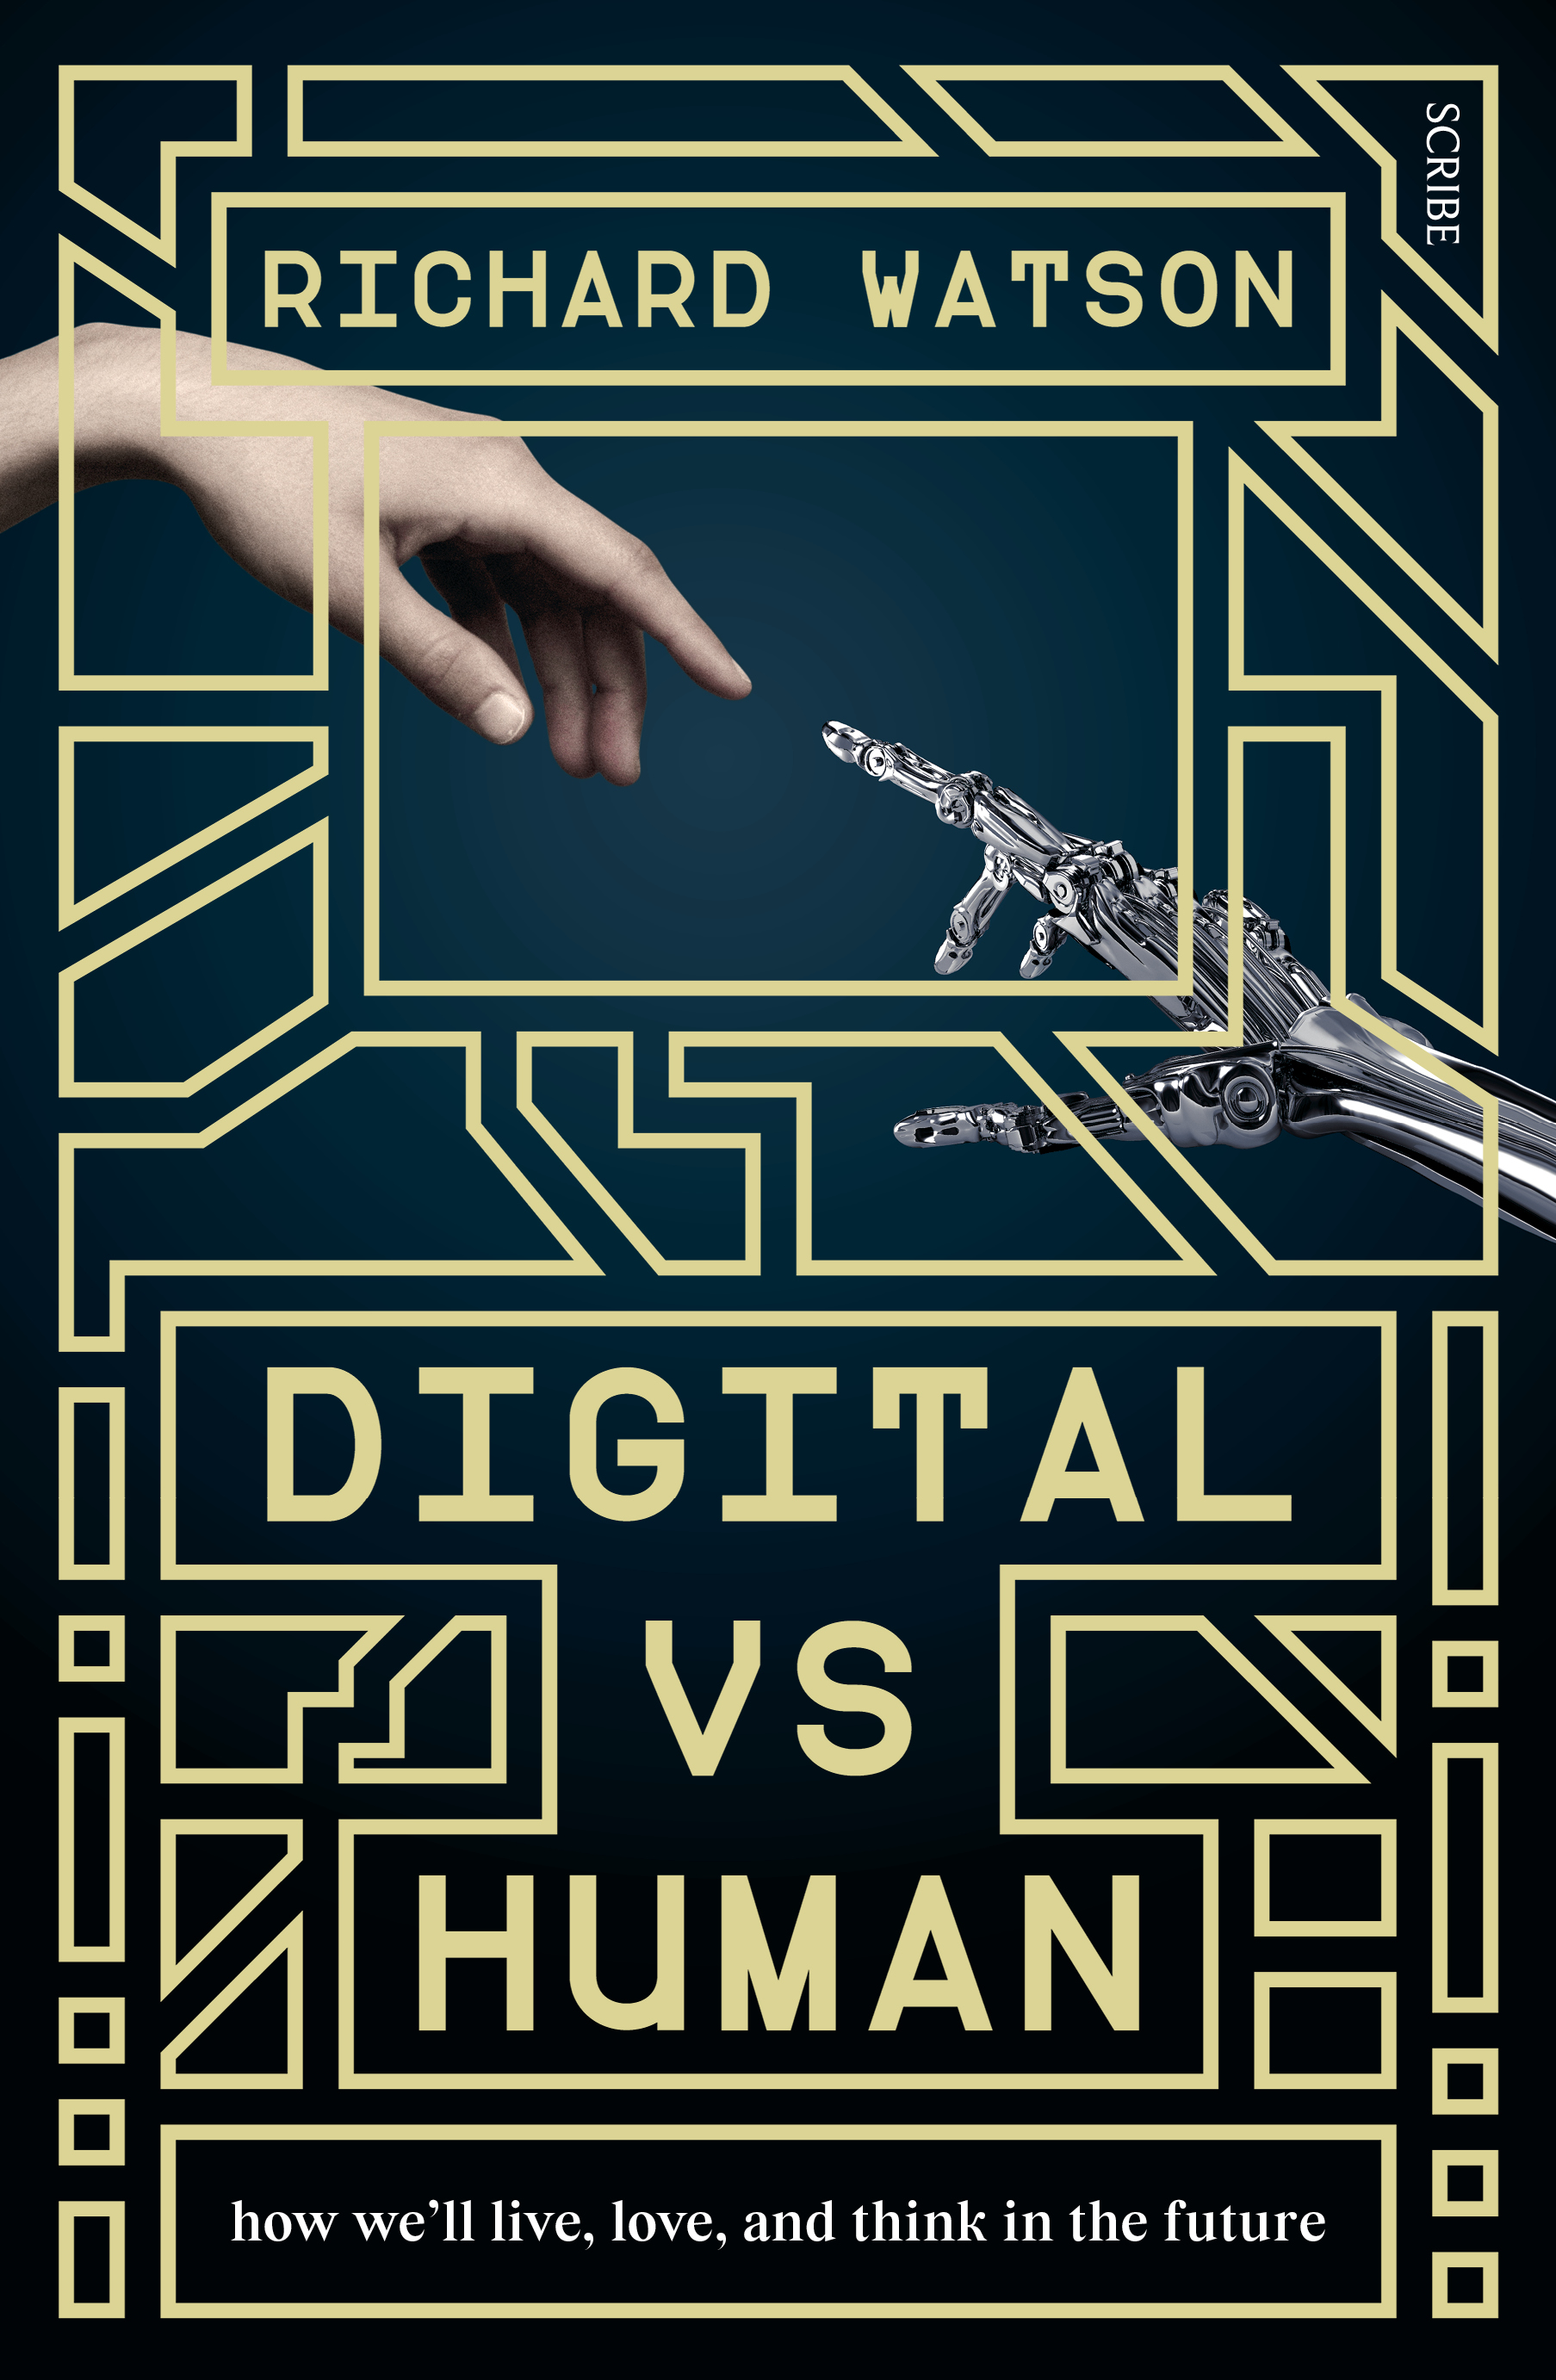 Digital vs Humanhow we'll live, love, and think in the future